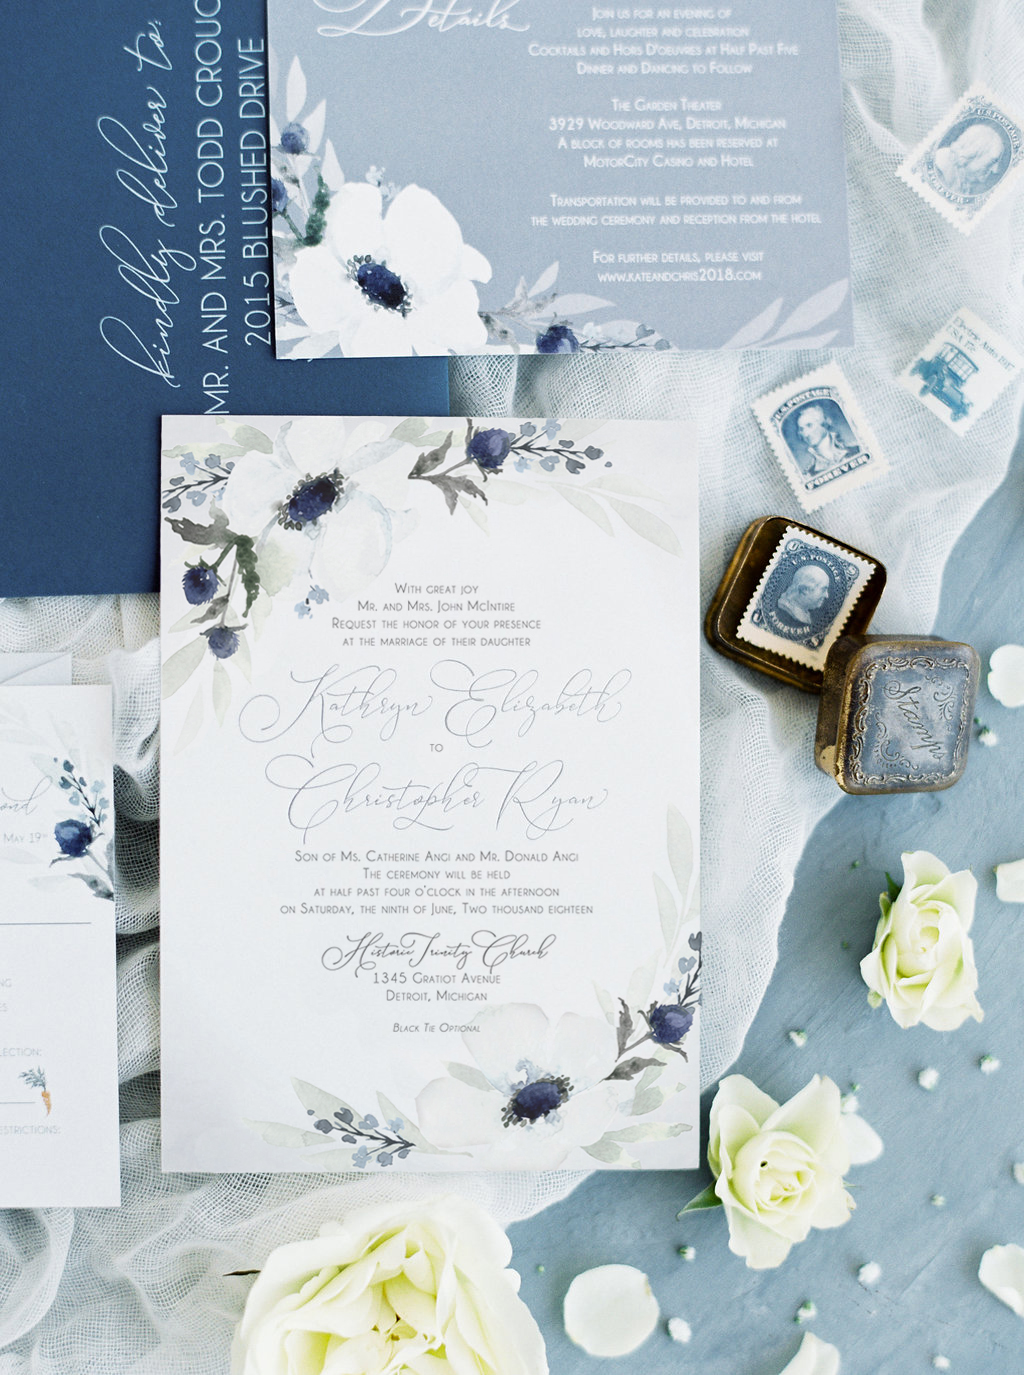 Anemone Wedding Invitations : Historic Trinity Church, Detroit Michigan Wedding Invitations. Anemone wedding invitations. Blue watercolor design by Blushed Design, Wedding Invitations and Fine Art Portraits  #blueweddinginvitations #watercolorweddinginvitations #bespokeweddinginvitations #michiganwedding #midwestwedding #anemoneweddinginvitations